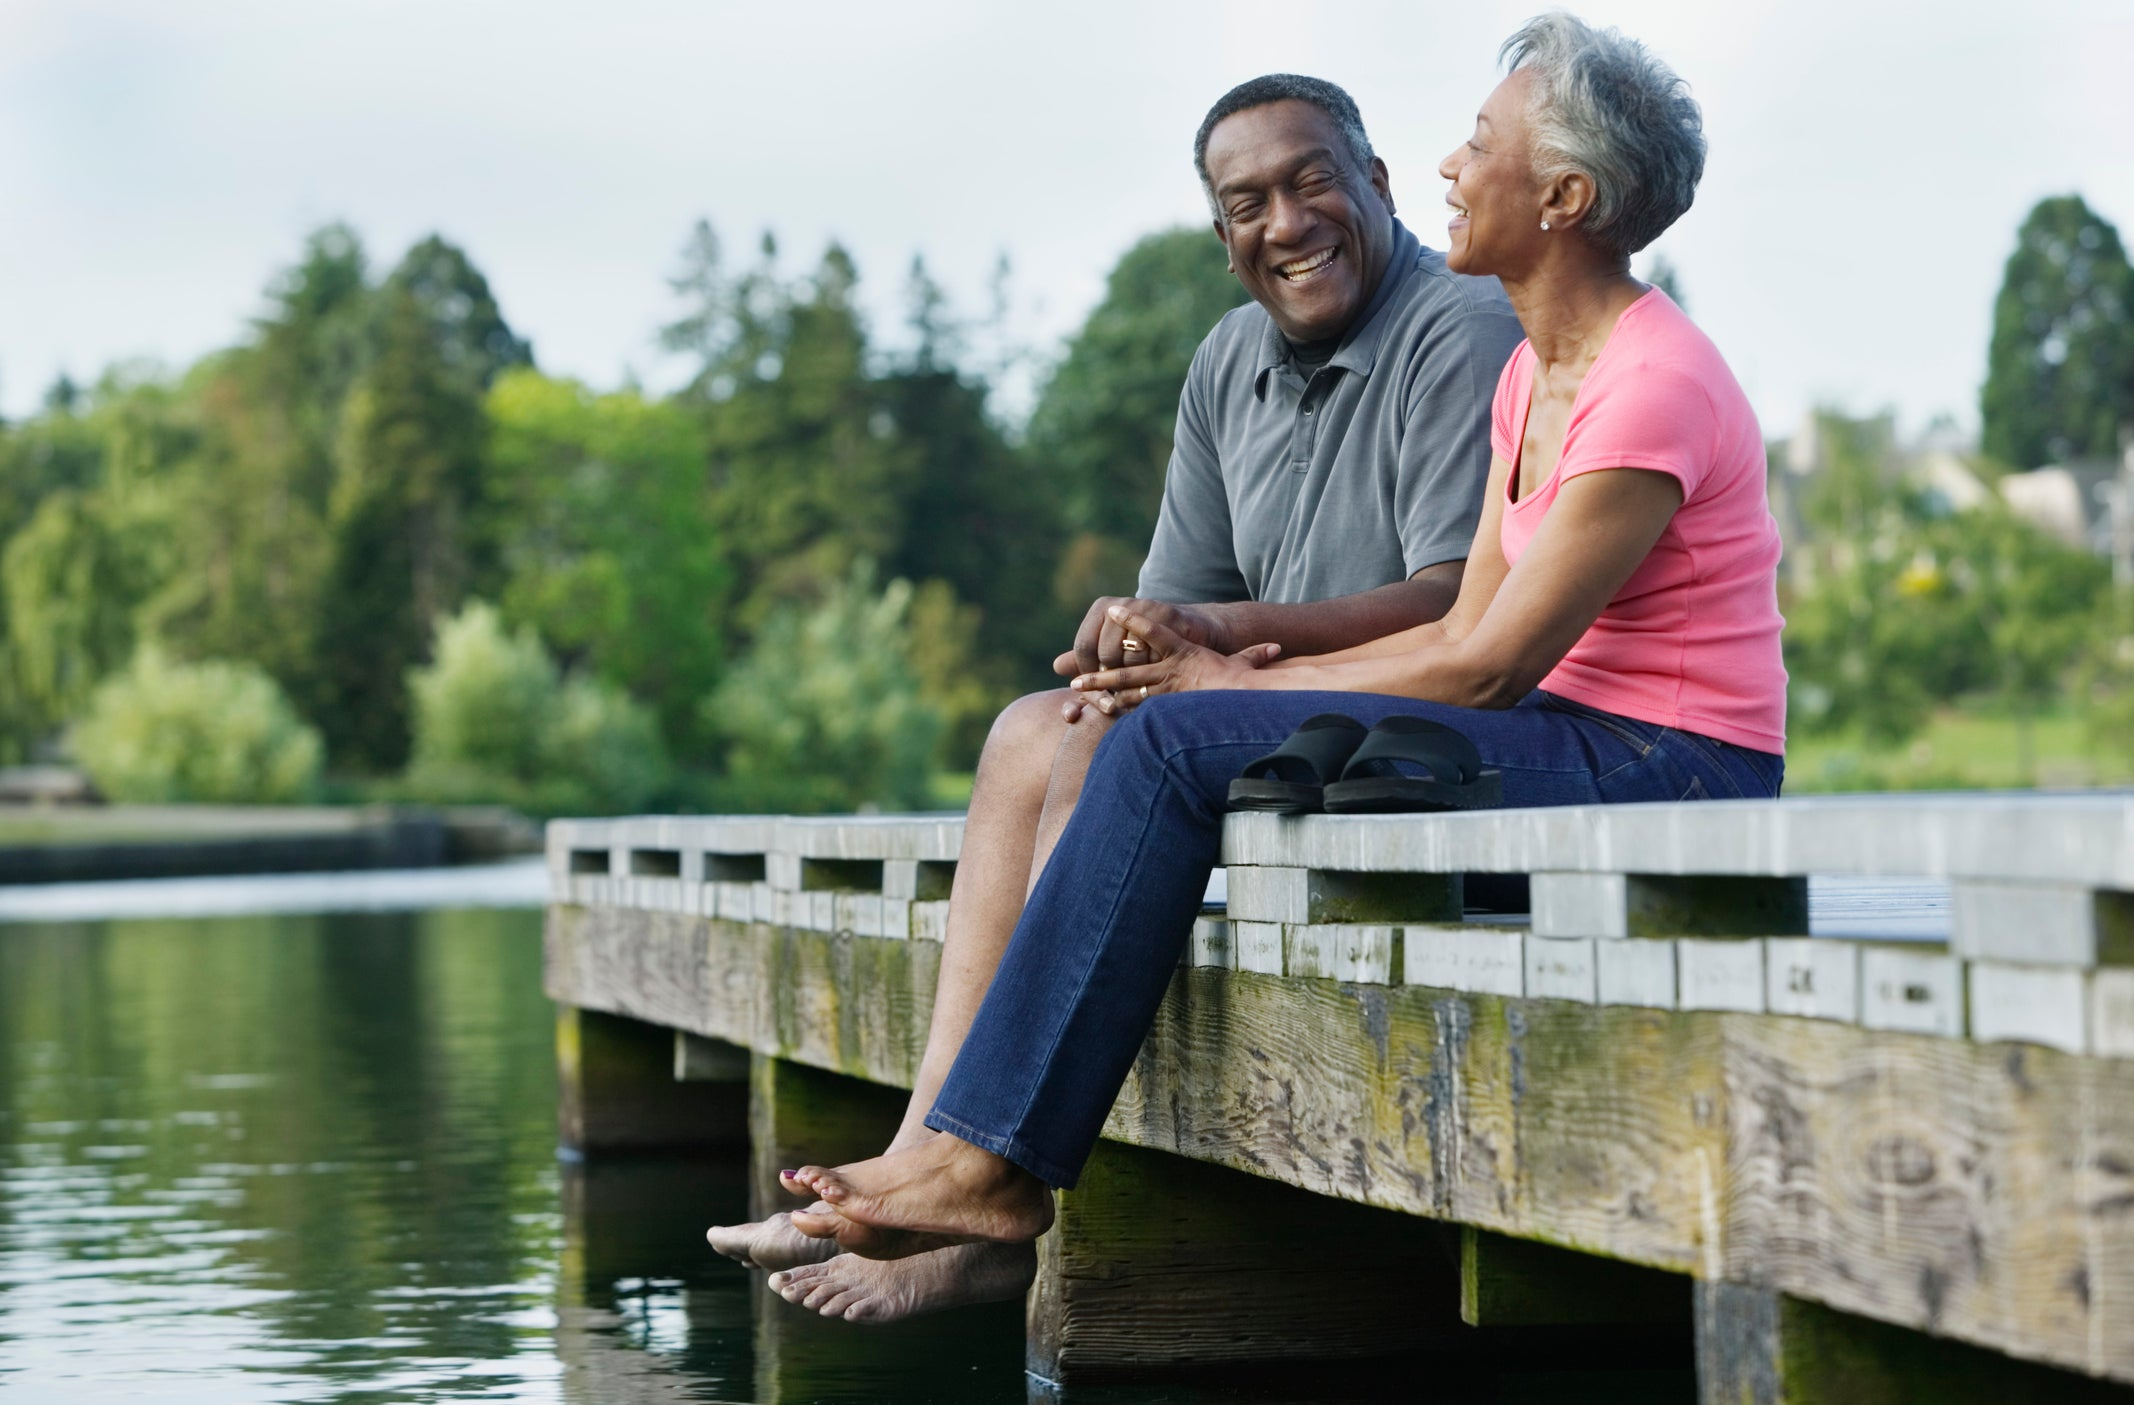 3 Pros and 2 Cons of Working in Retirement